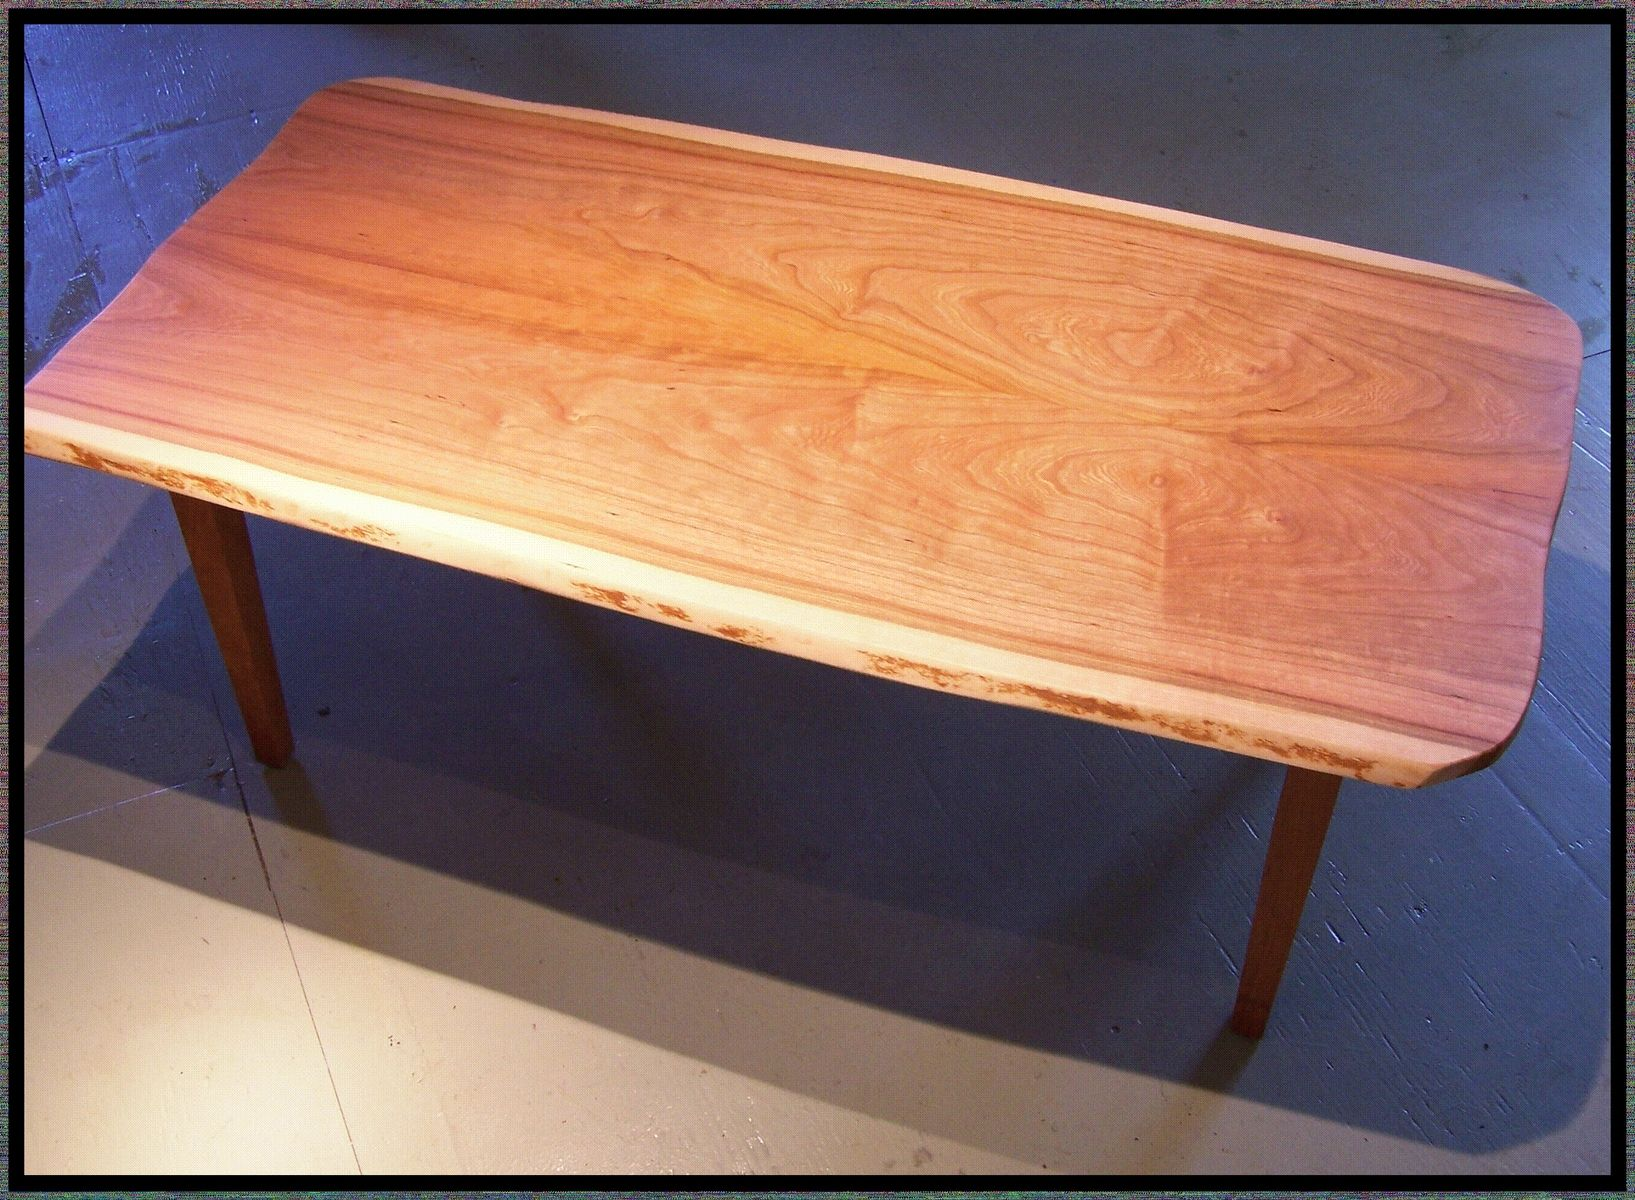 Hand Crafted Live Edge Cherry Coffee Table By Rockledge Farm